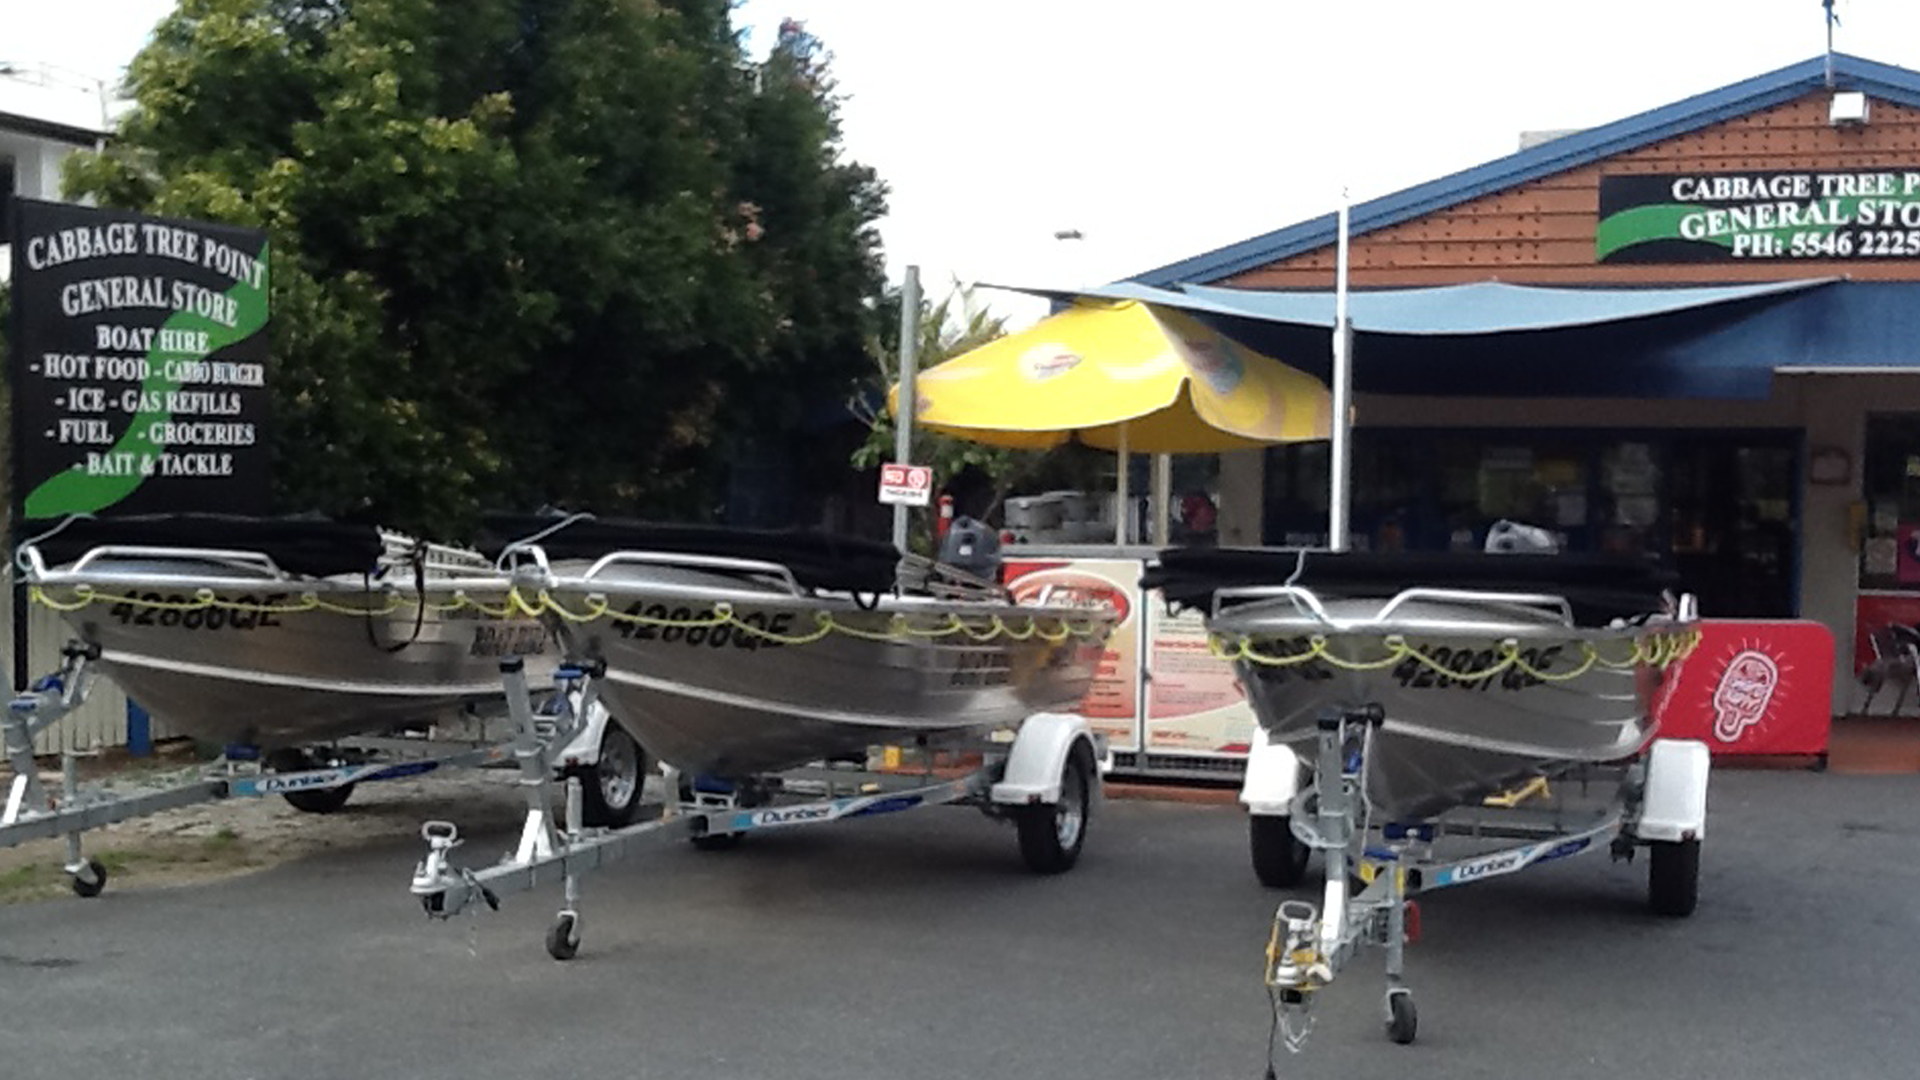 Cabbage Tree Point General Store and Boat Hire